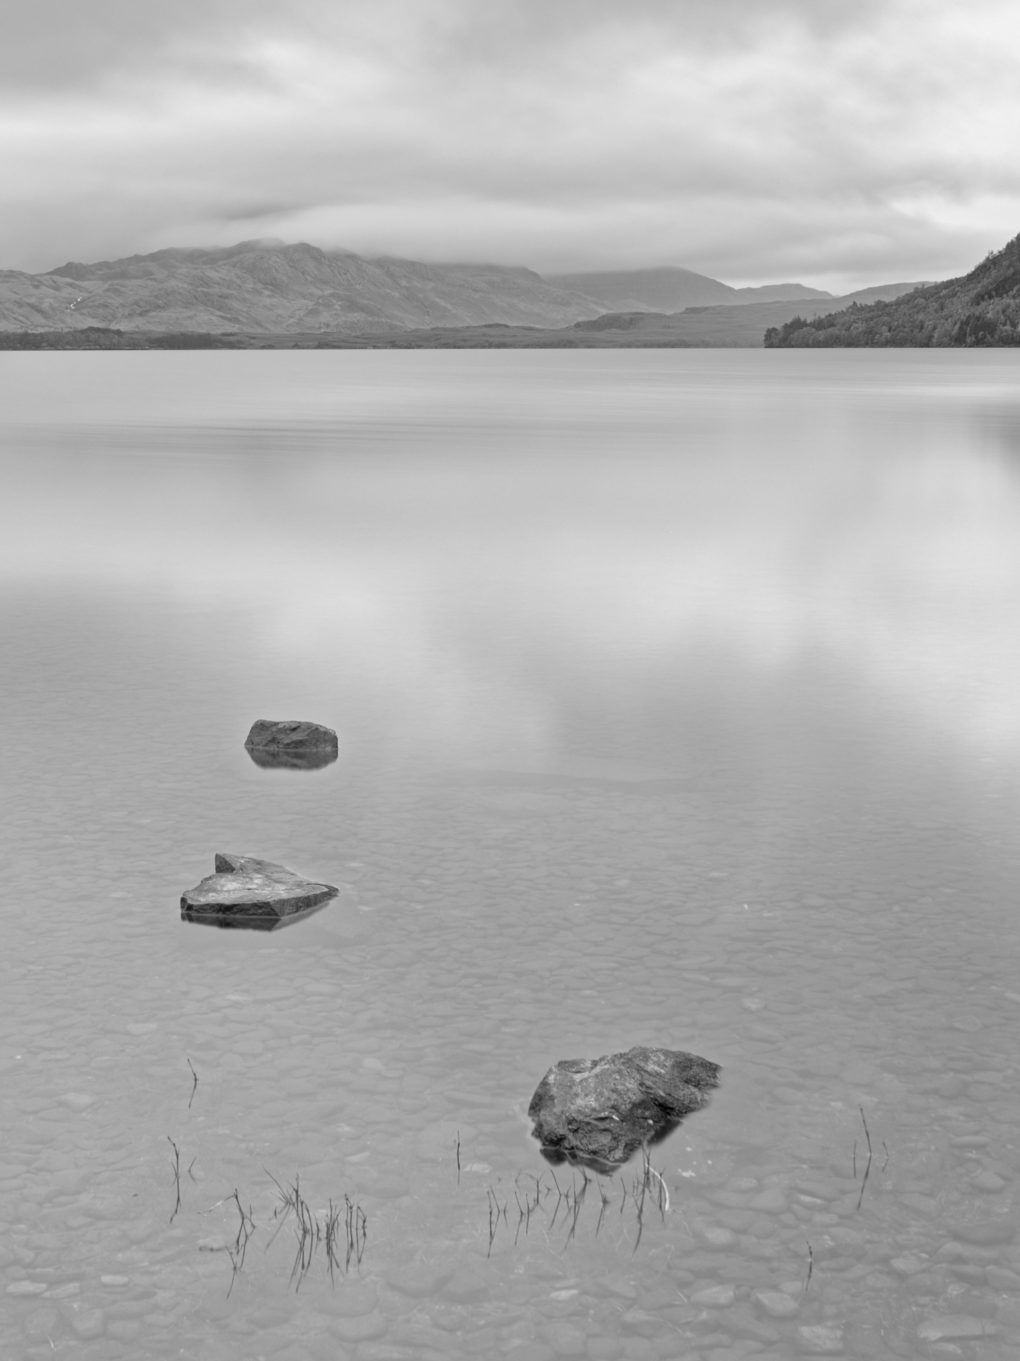 On the shore of Loch Maree at Slattadale, looking toward Slioch in the distance.  As I was here, there was a fellow cooking breakfast a few yards along the little beach - the smell of fried bacon rashers wafted past on the breeze...